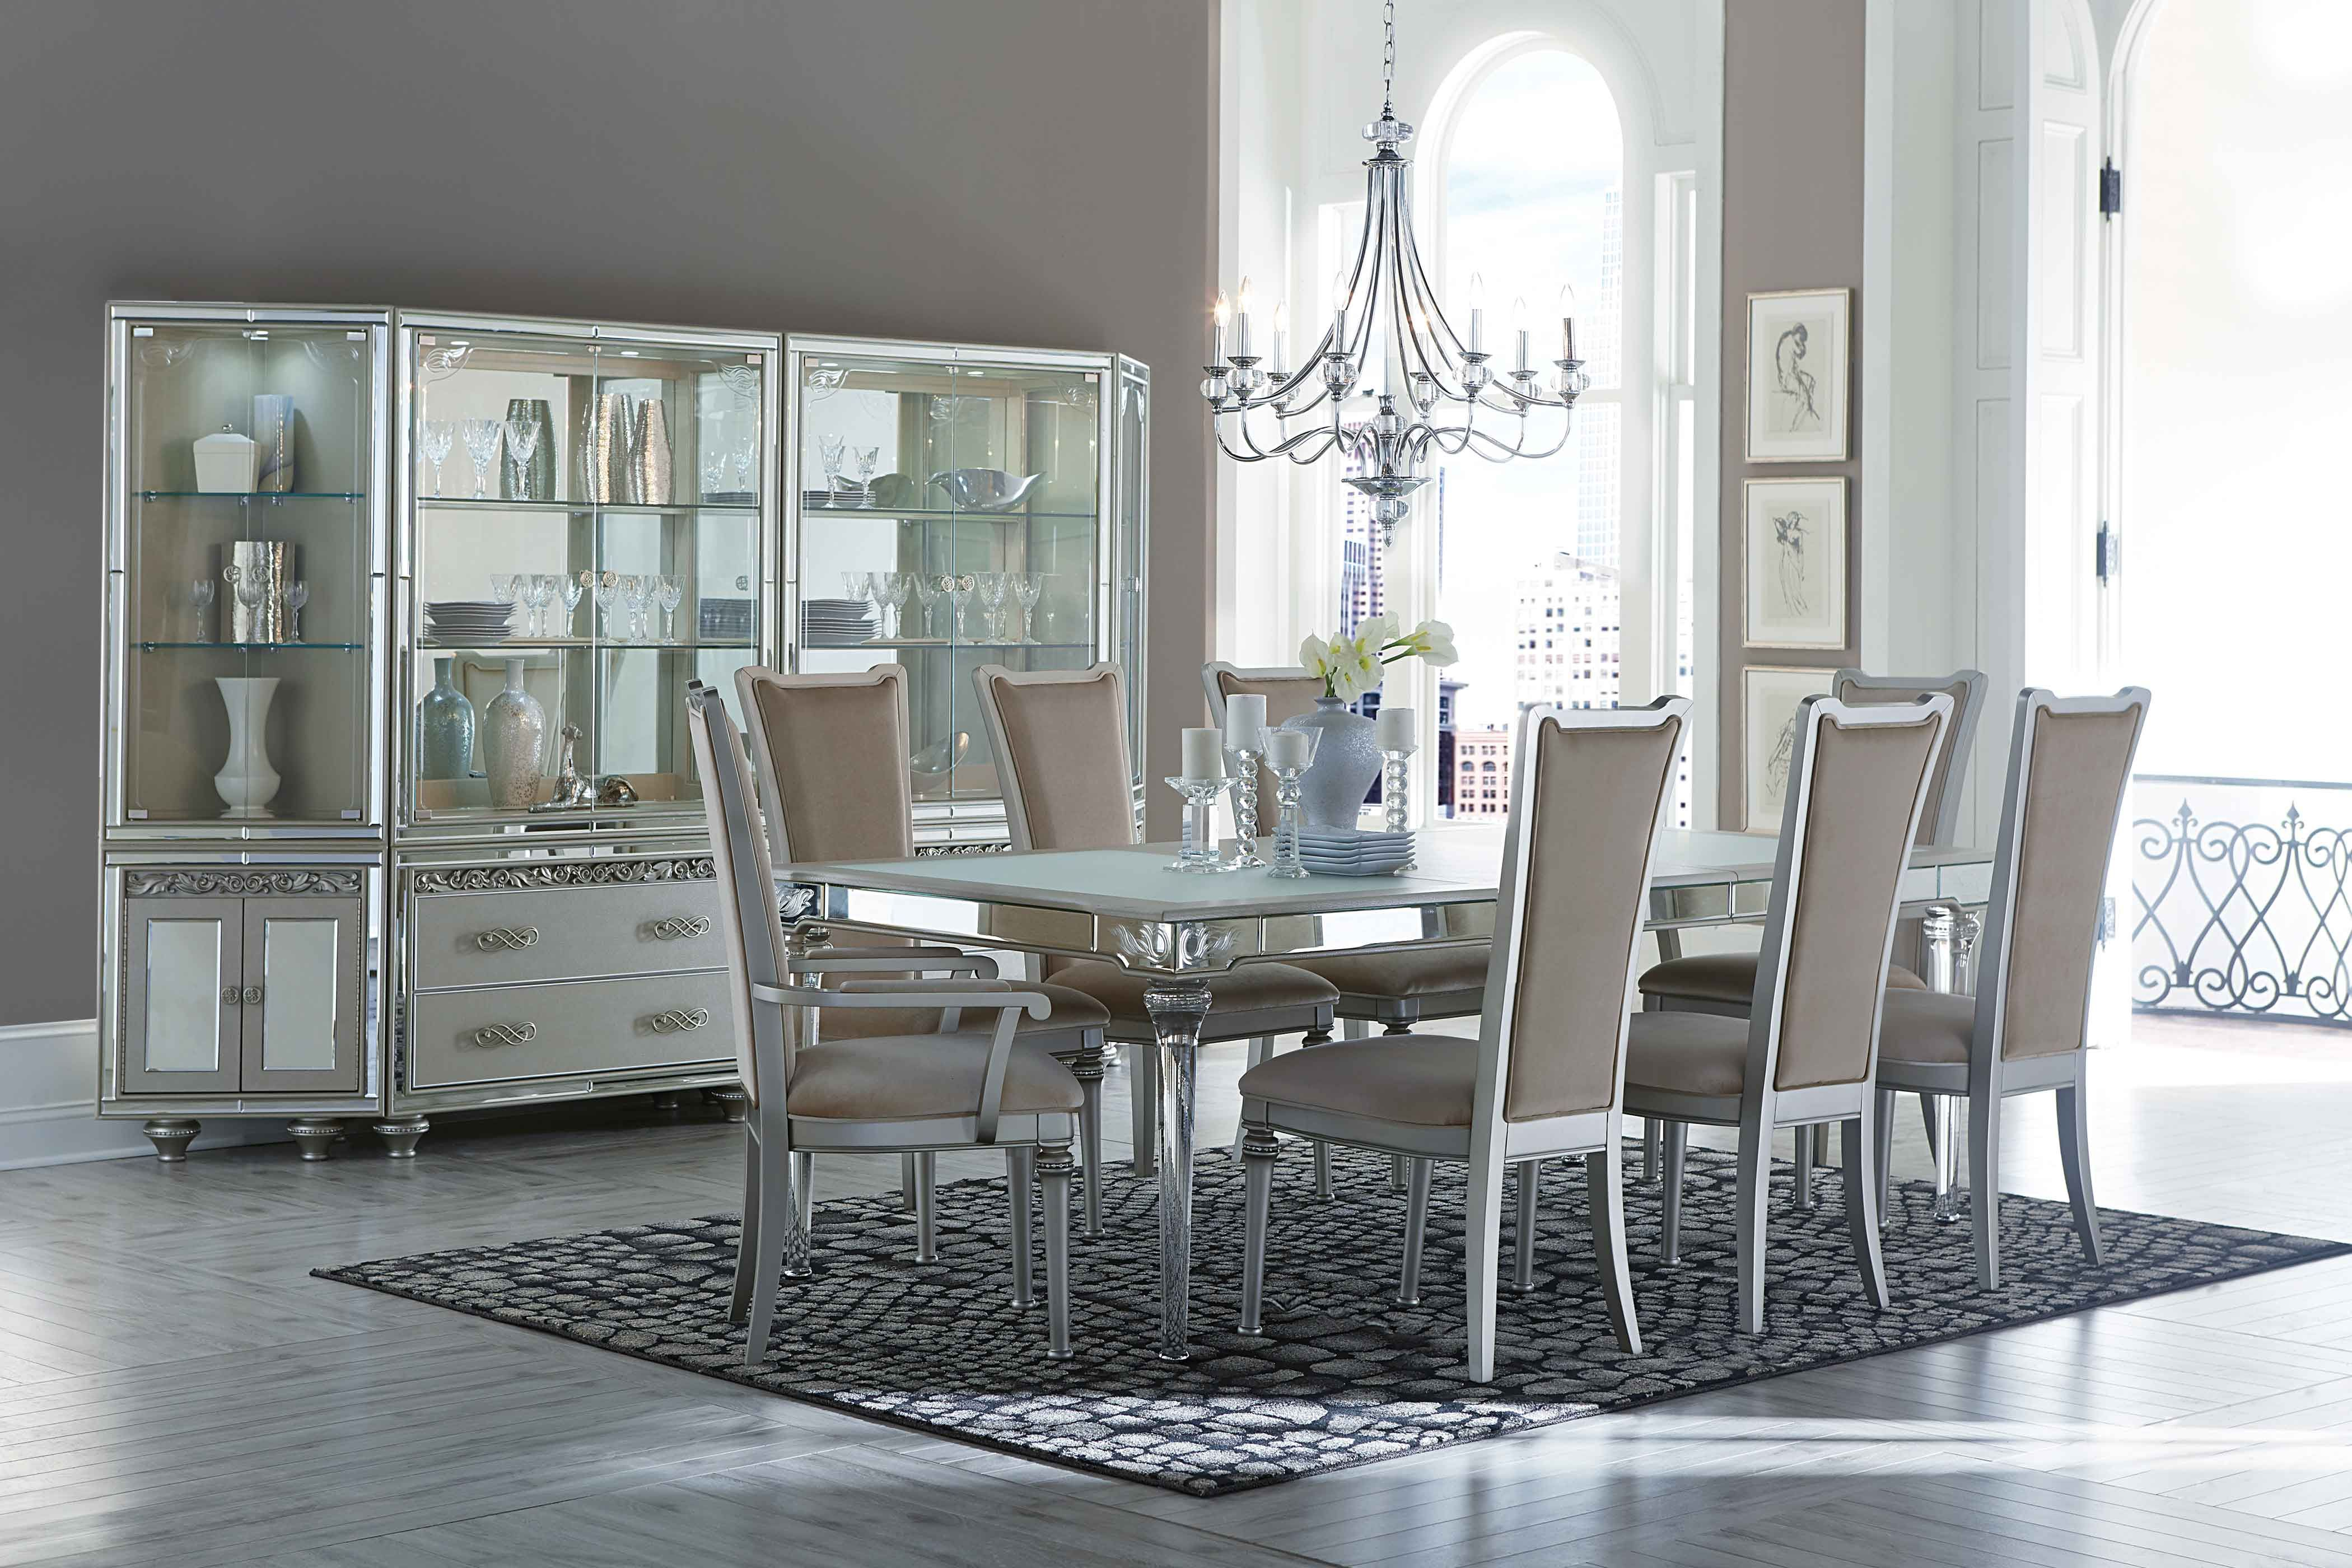 Aico Bel Air Park Dining Room Set This Chic And Fashionable Group